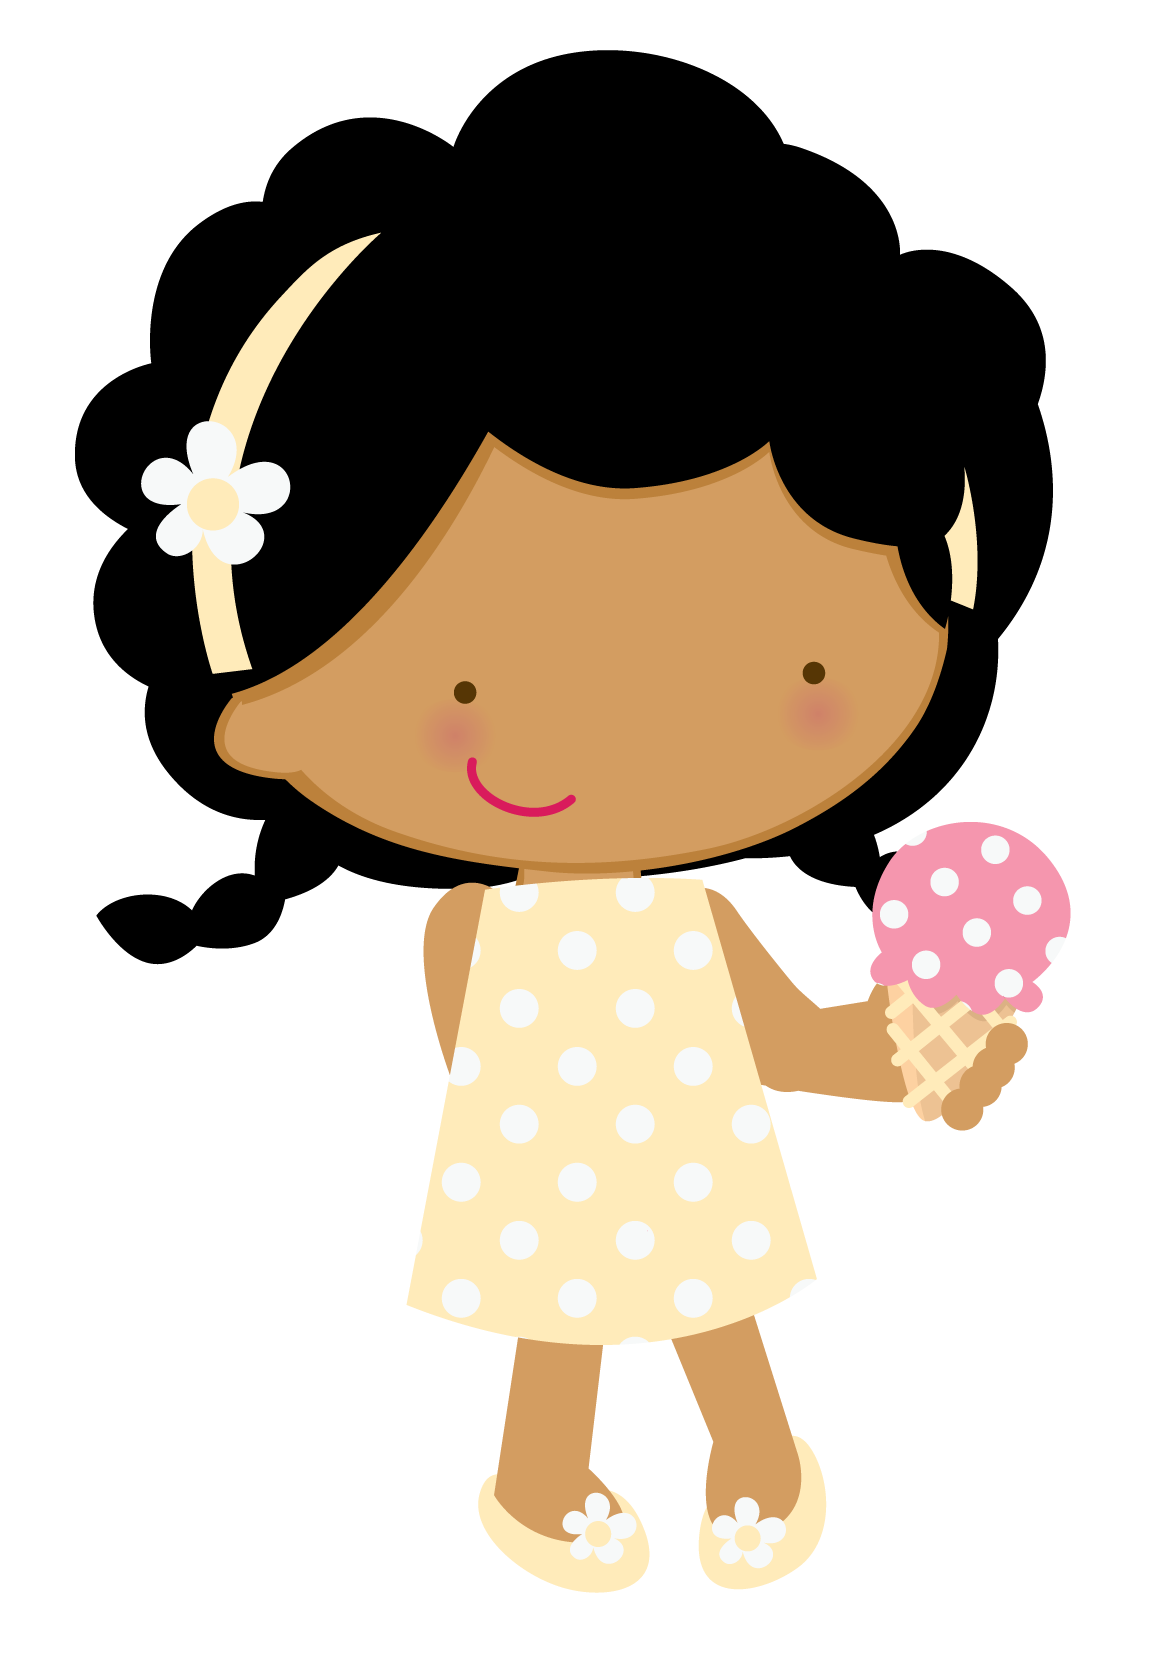 Zwd ice cream png. Stamp clipart kid